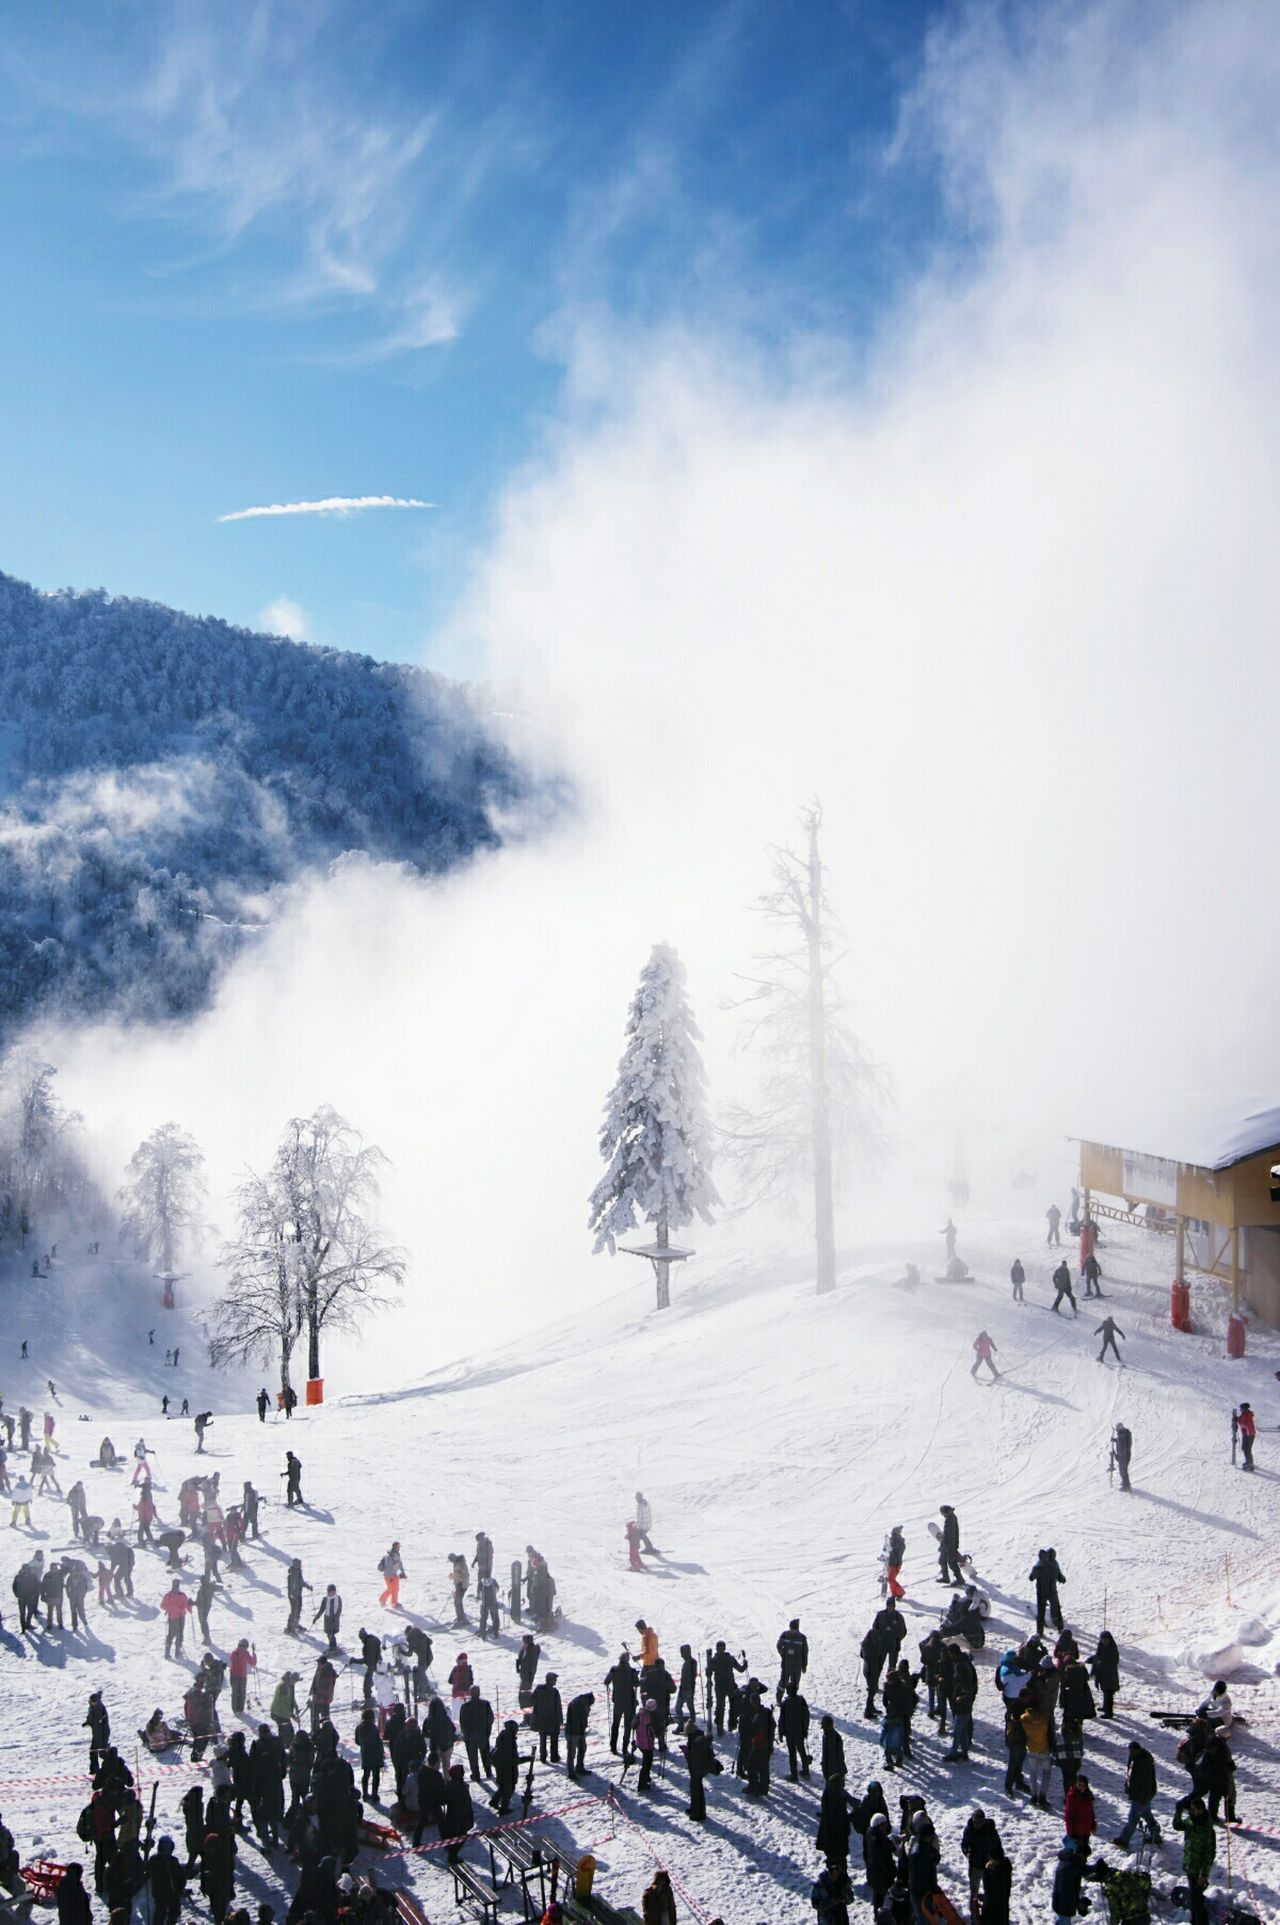 Large Group Of People Winter Adventure Club Snow Sports Snowing Sky Outdoors People Nature Snow Tree Check This Out People Watching Snowboarding Peopleandplaces Its Cold Outside Cold Temperature Outdoors Life Beauty In Nature Finding New Frontiers